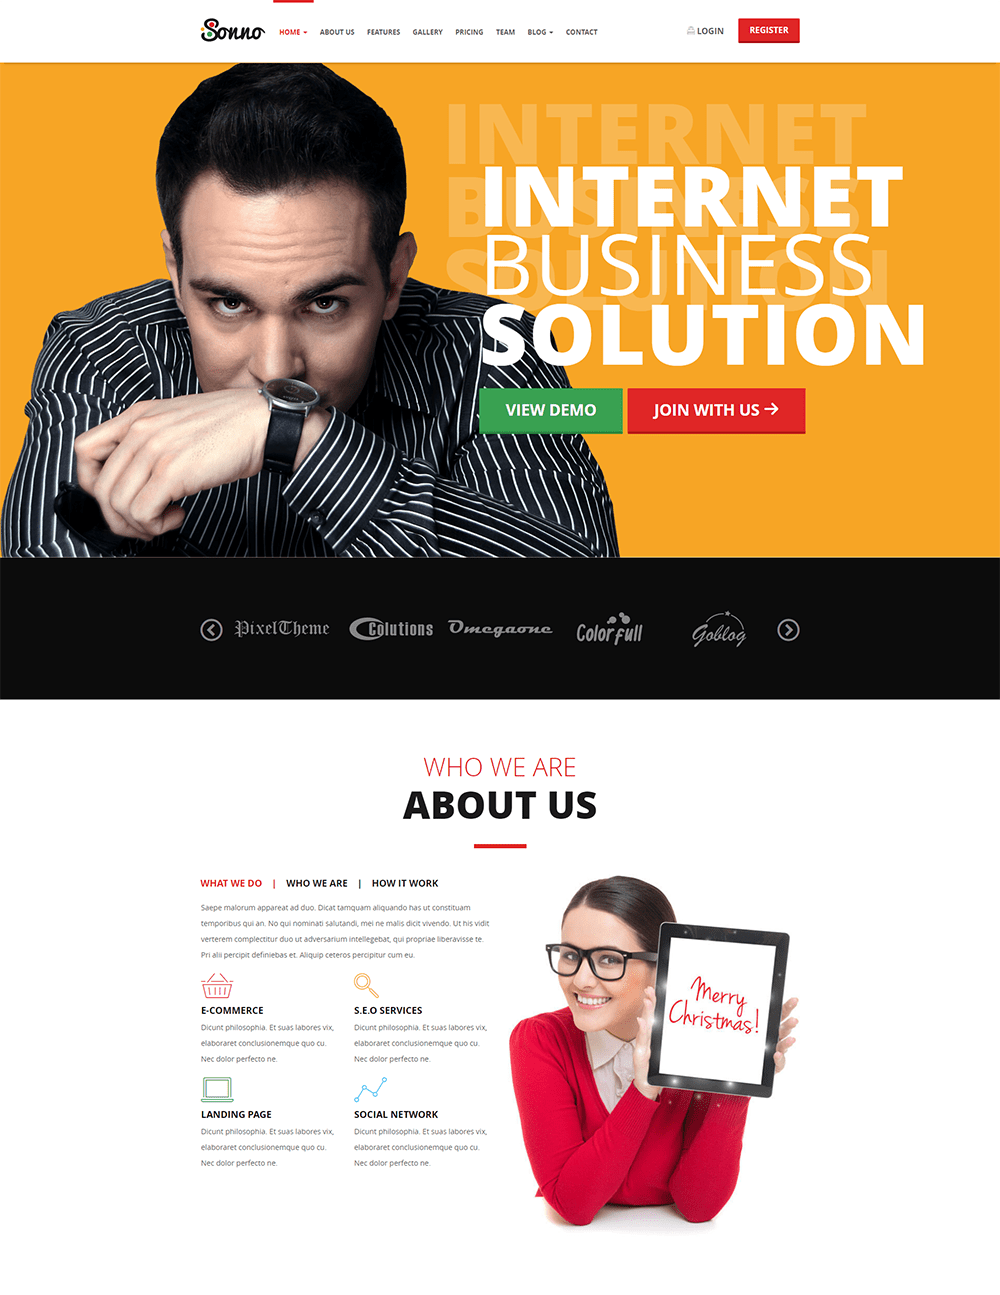 Sonno Landing Page WordPress Theme